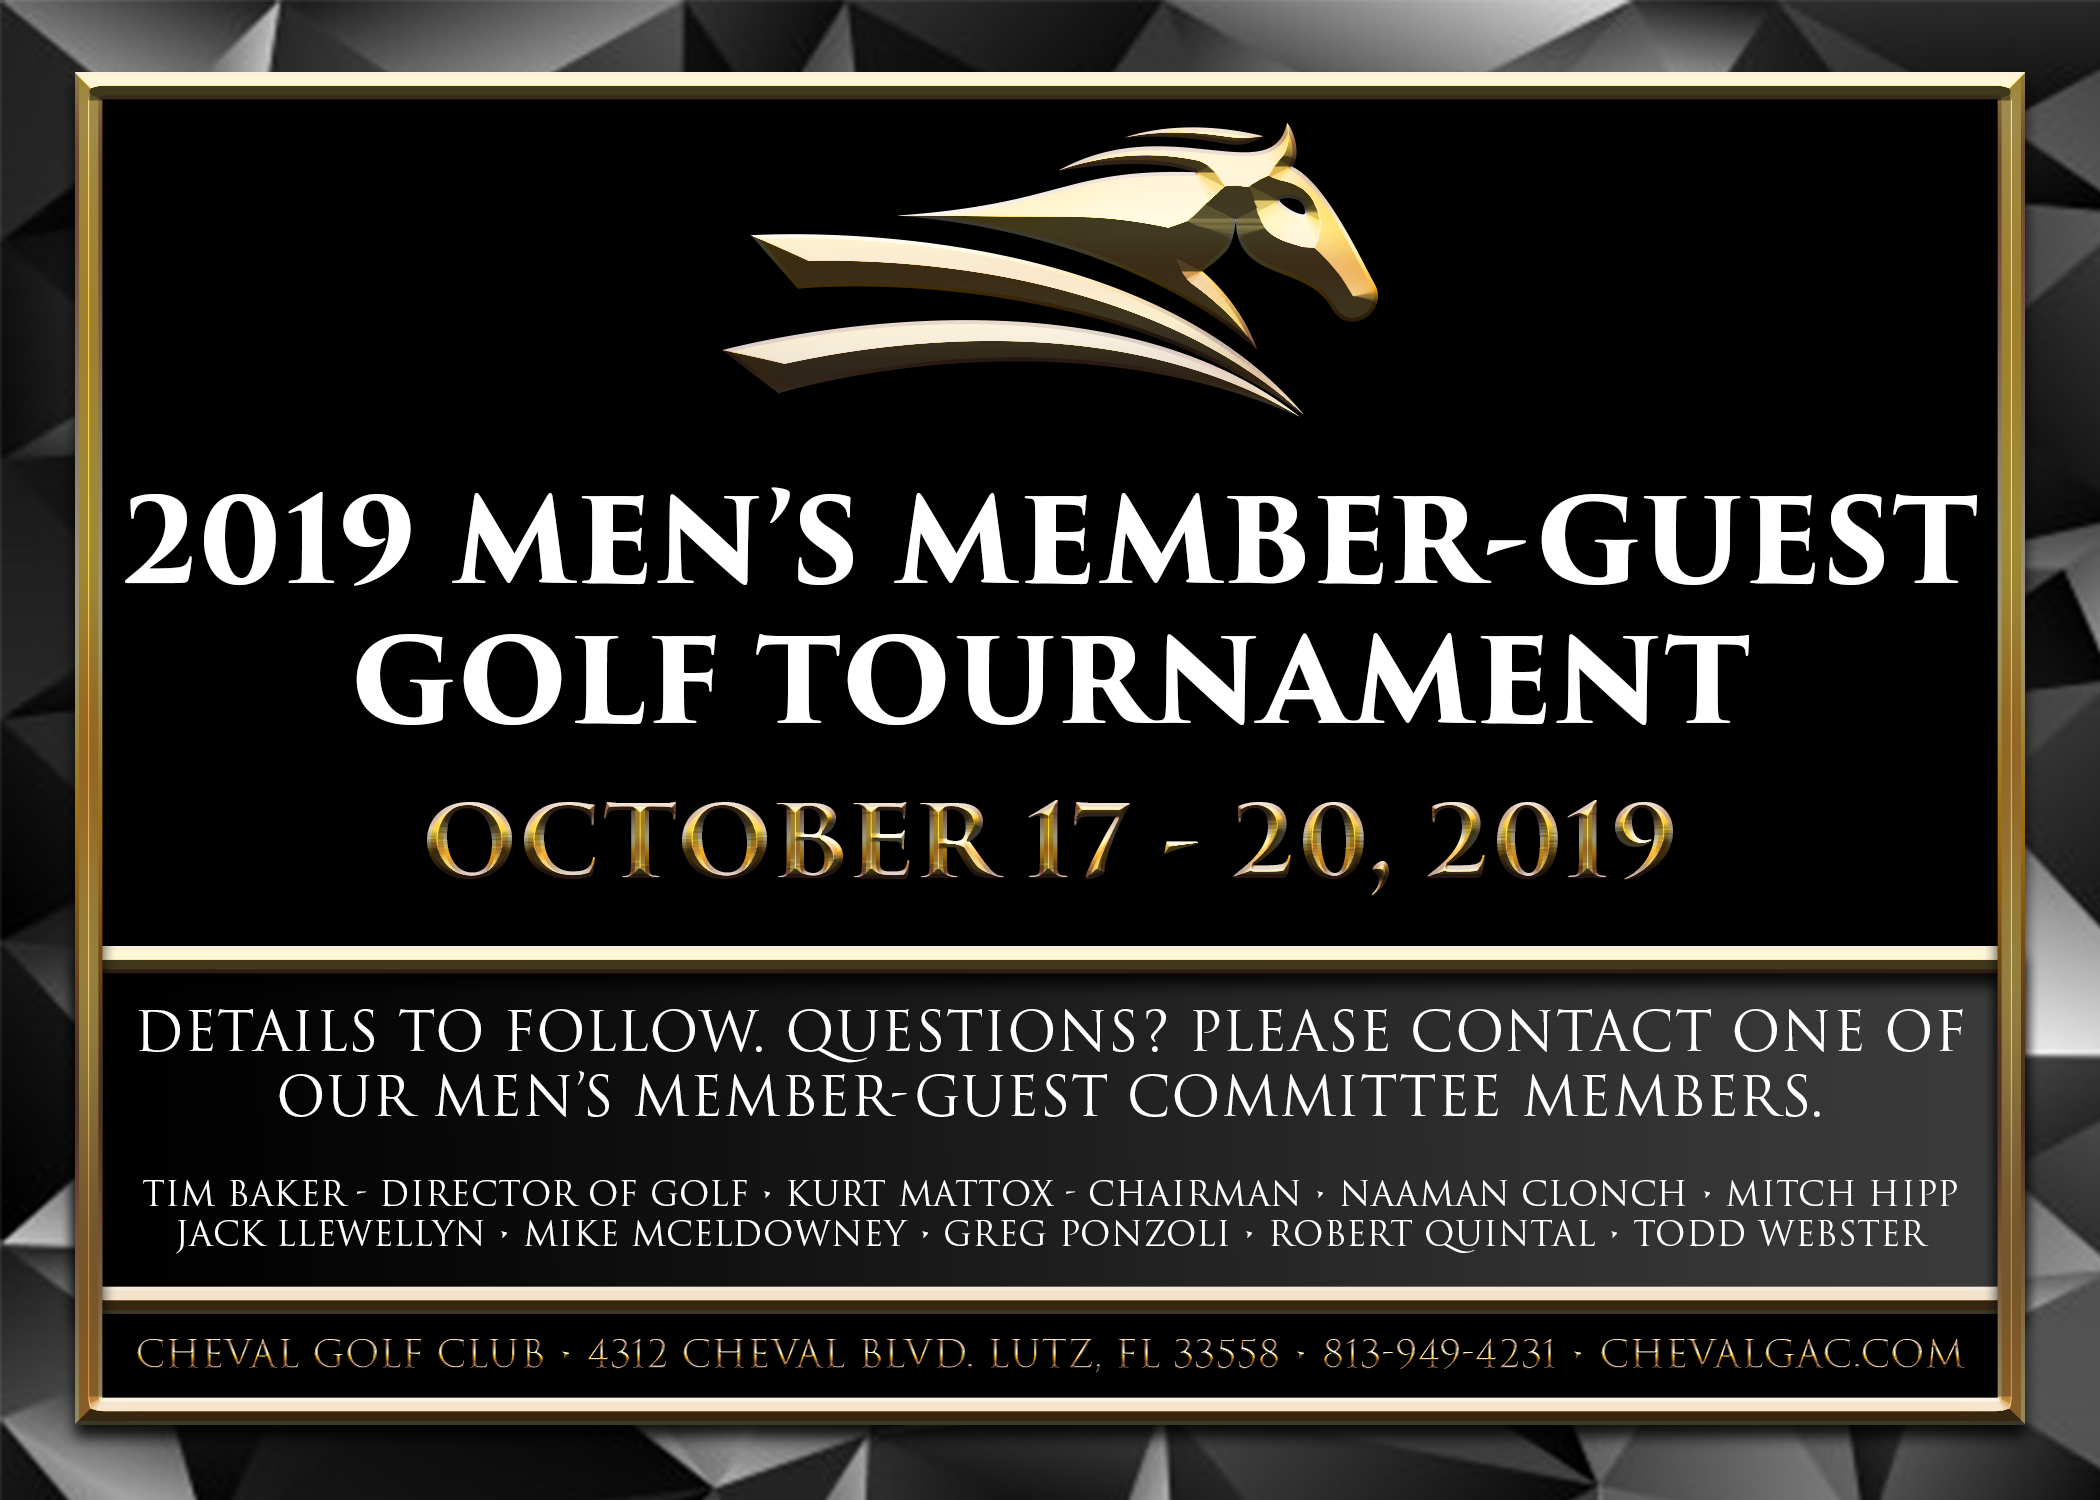 2019 Men's Member Guest Golf Tournament Cheval Golf